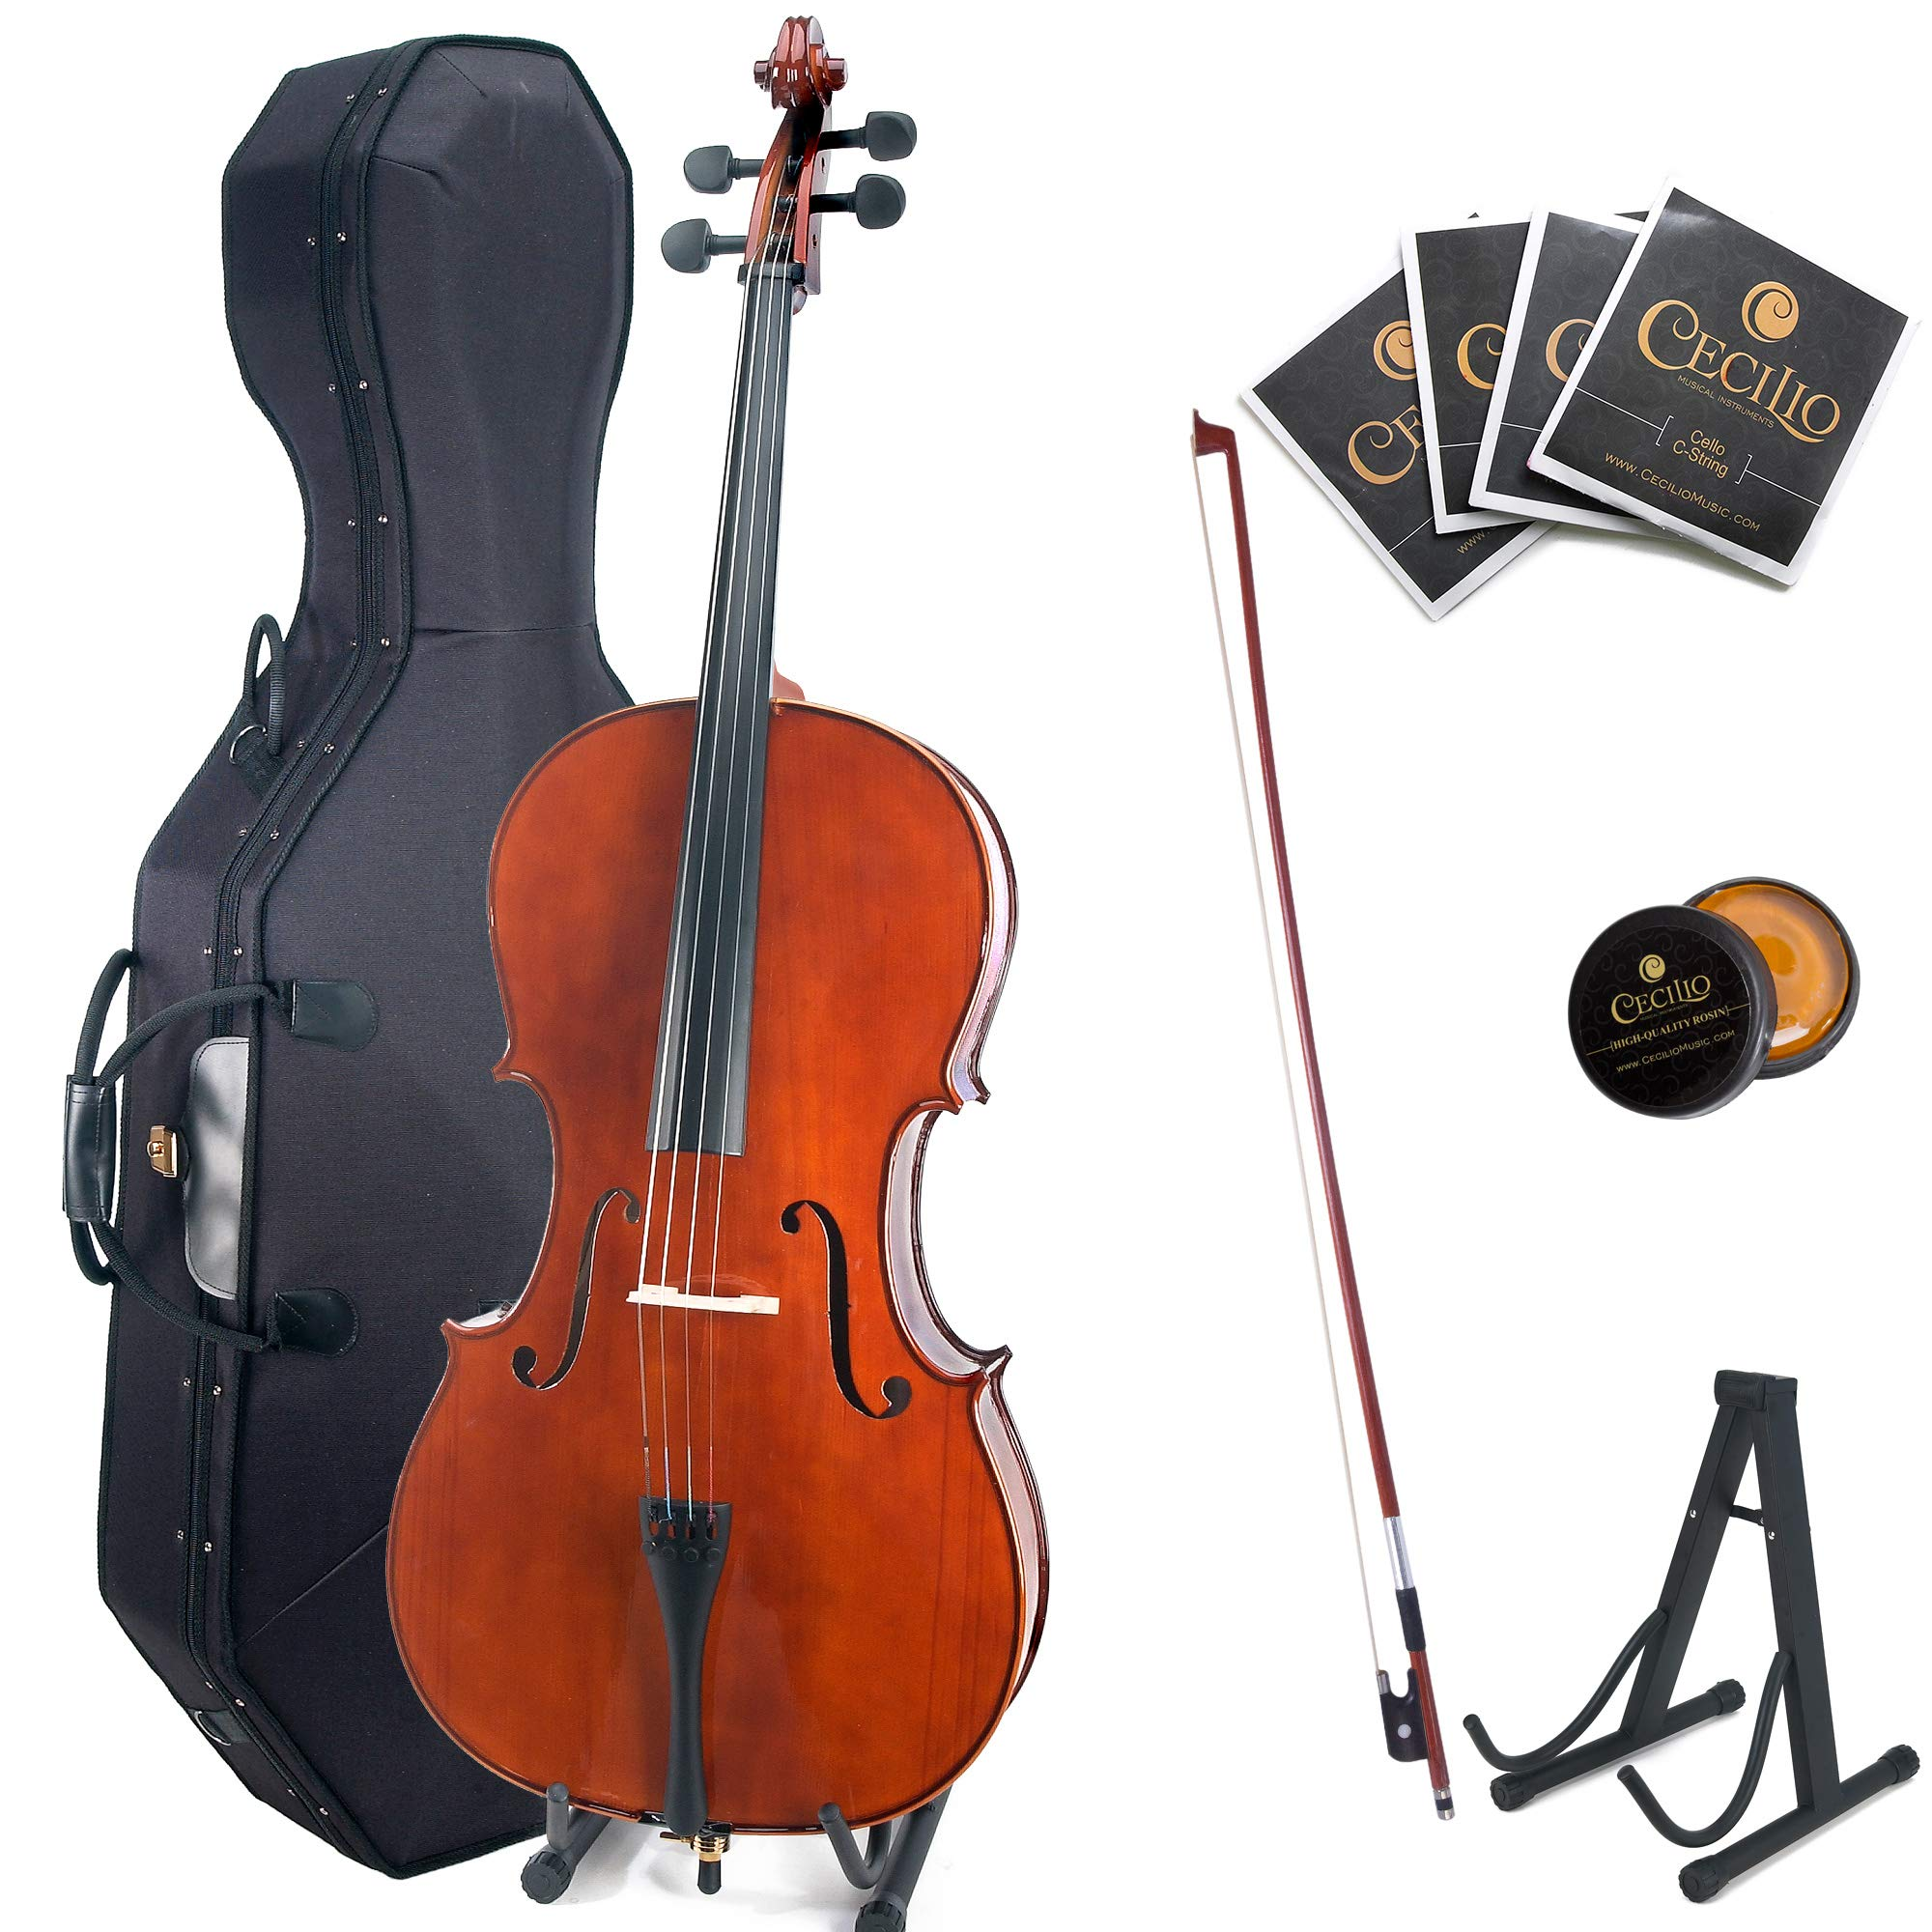 Cecilio CCO-200 Solid Wood Cello with Hard & Soft Case, Stand, Bow, Rosin, Bridge and Extra Set of Strings (Size 4/4 (Full Size), Varnish)